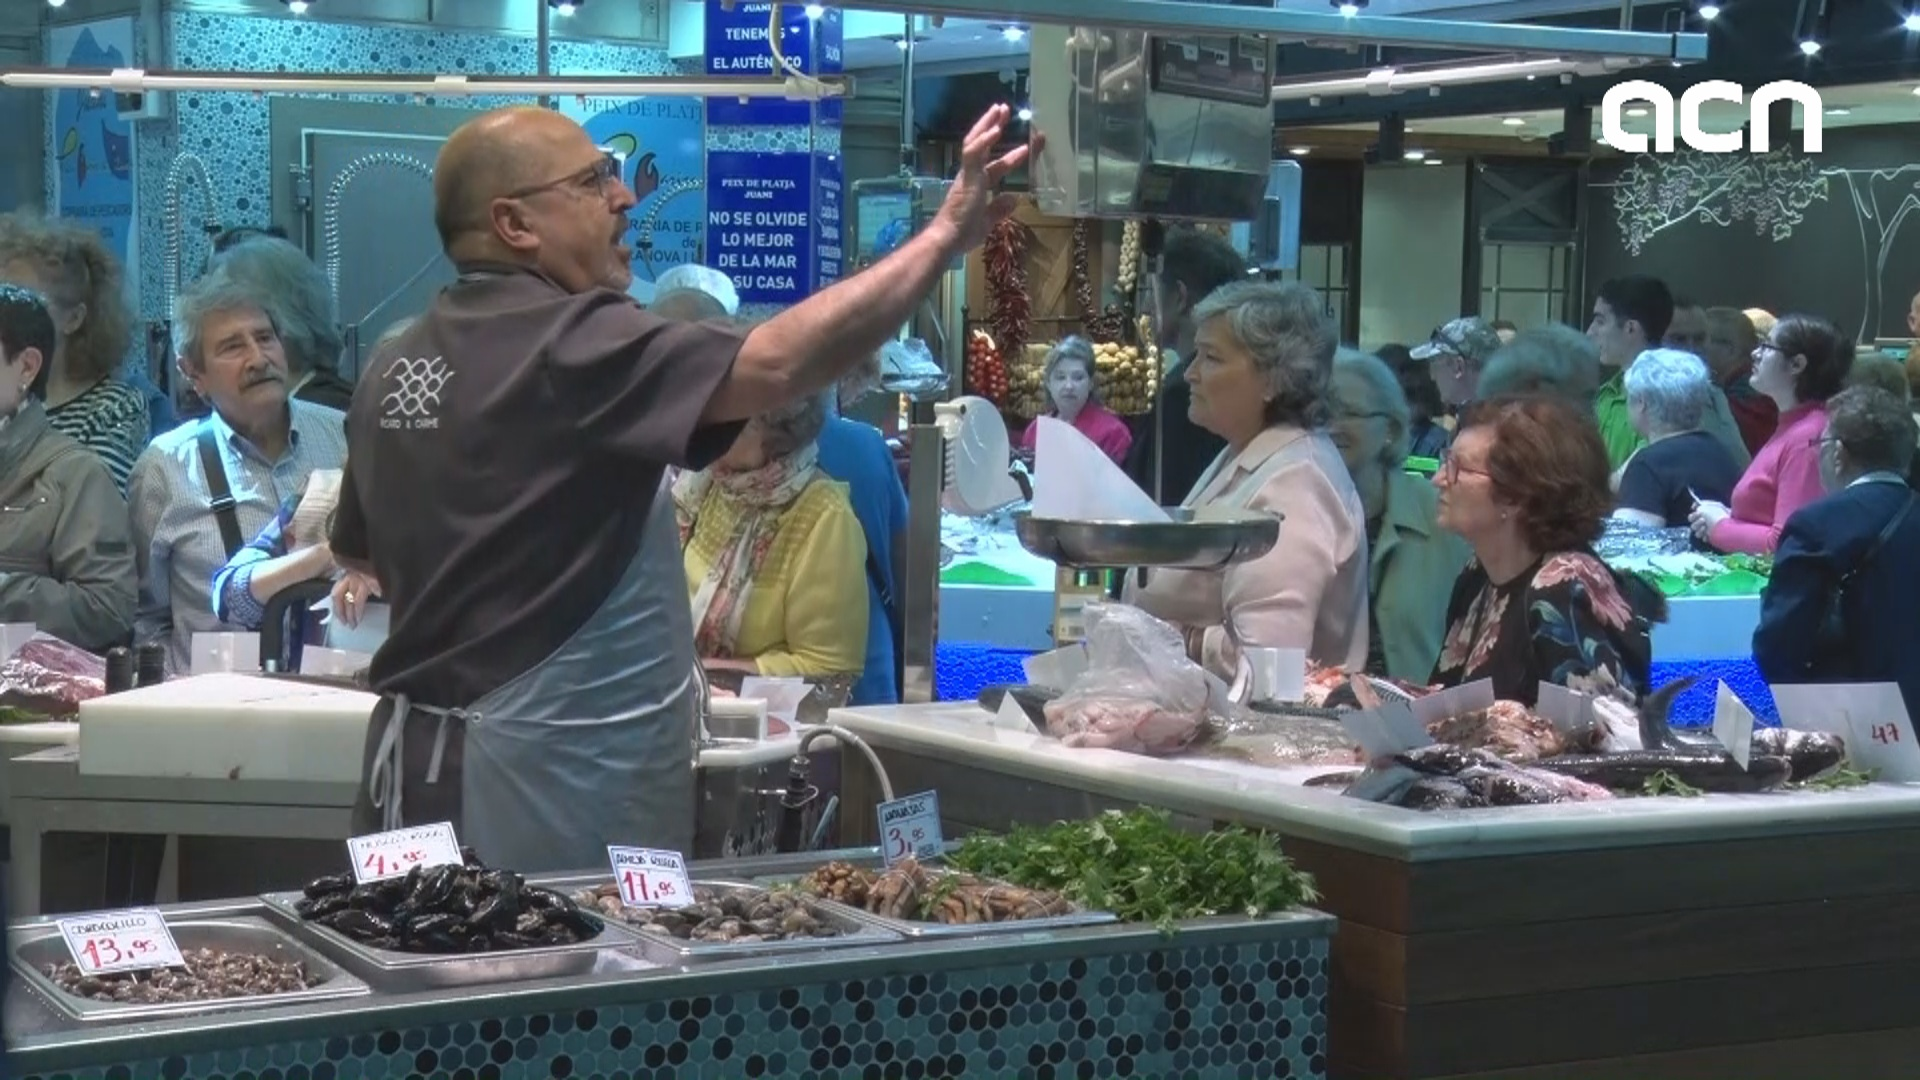 Historic Sant Antoni market re-opens after nine years of reforms